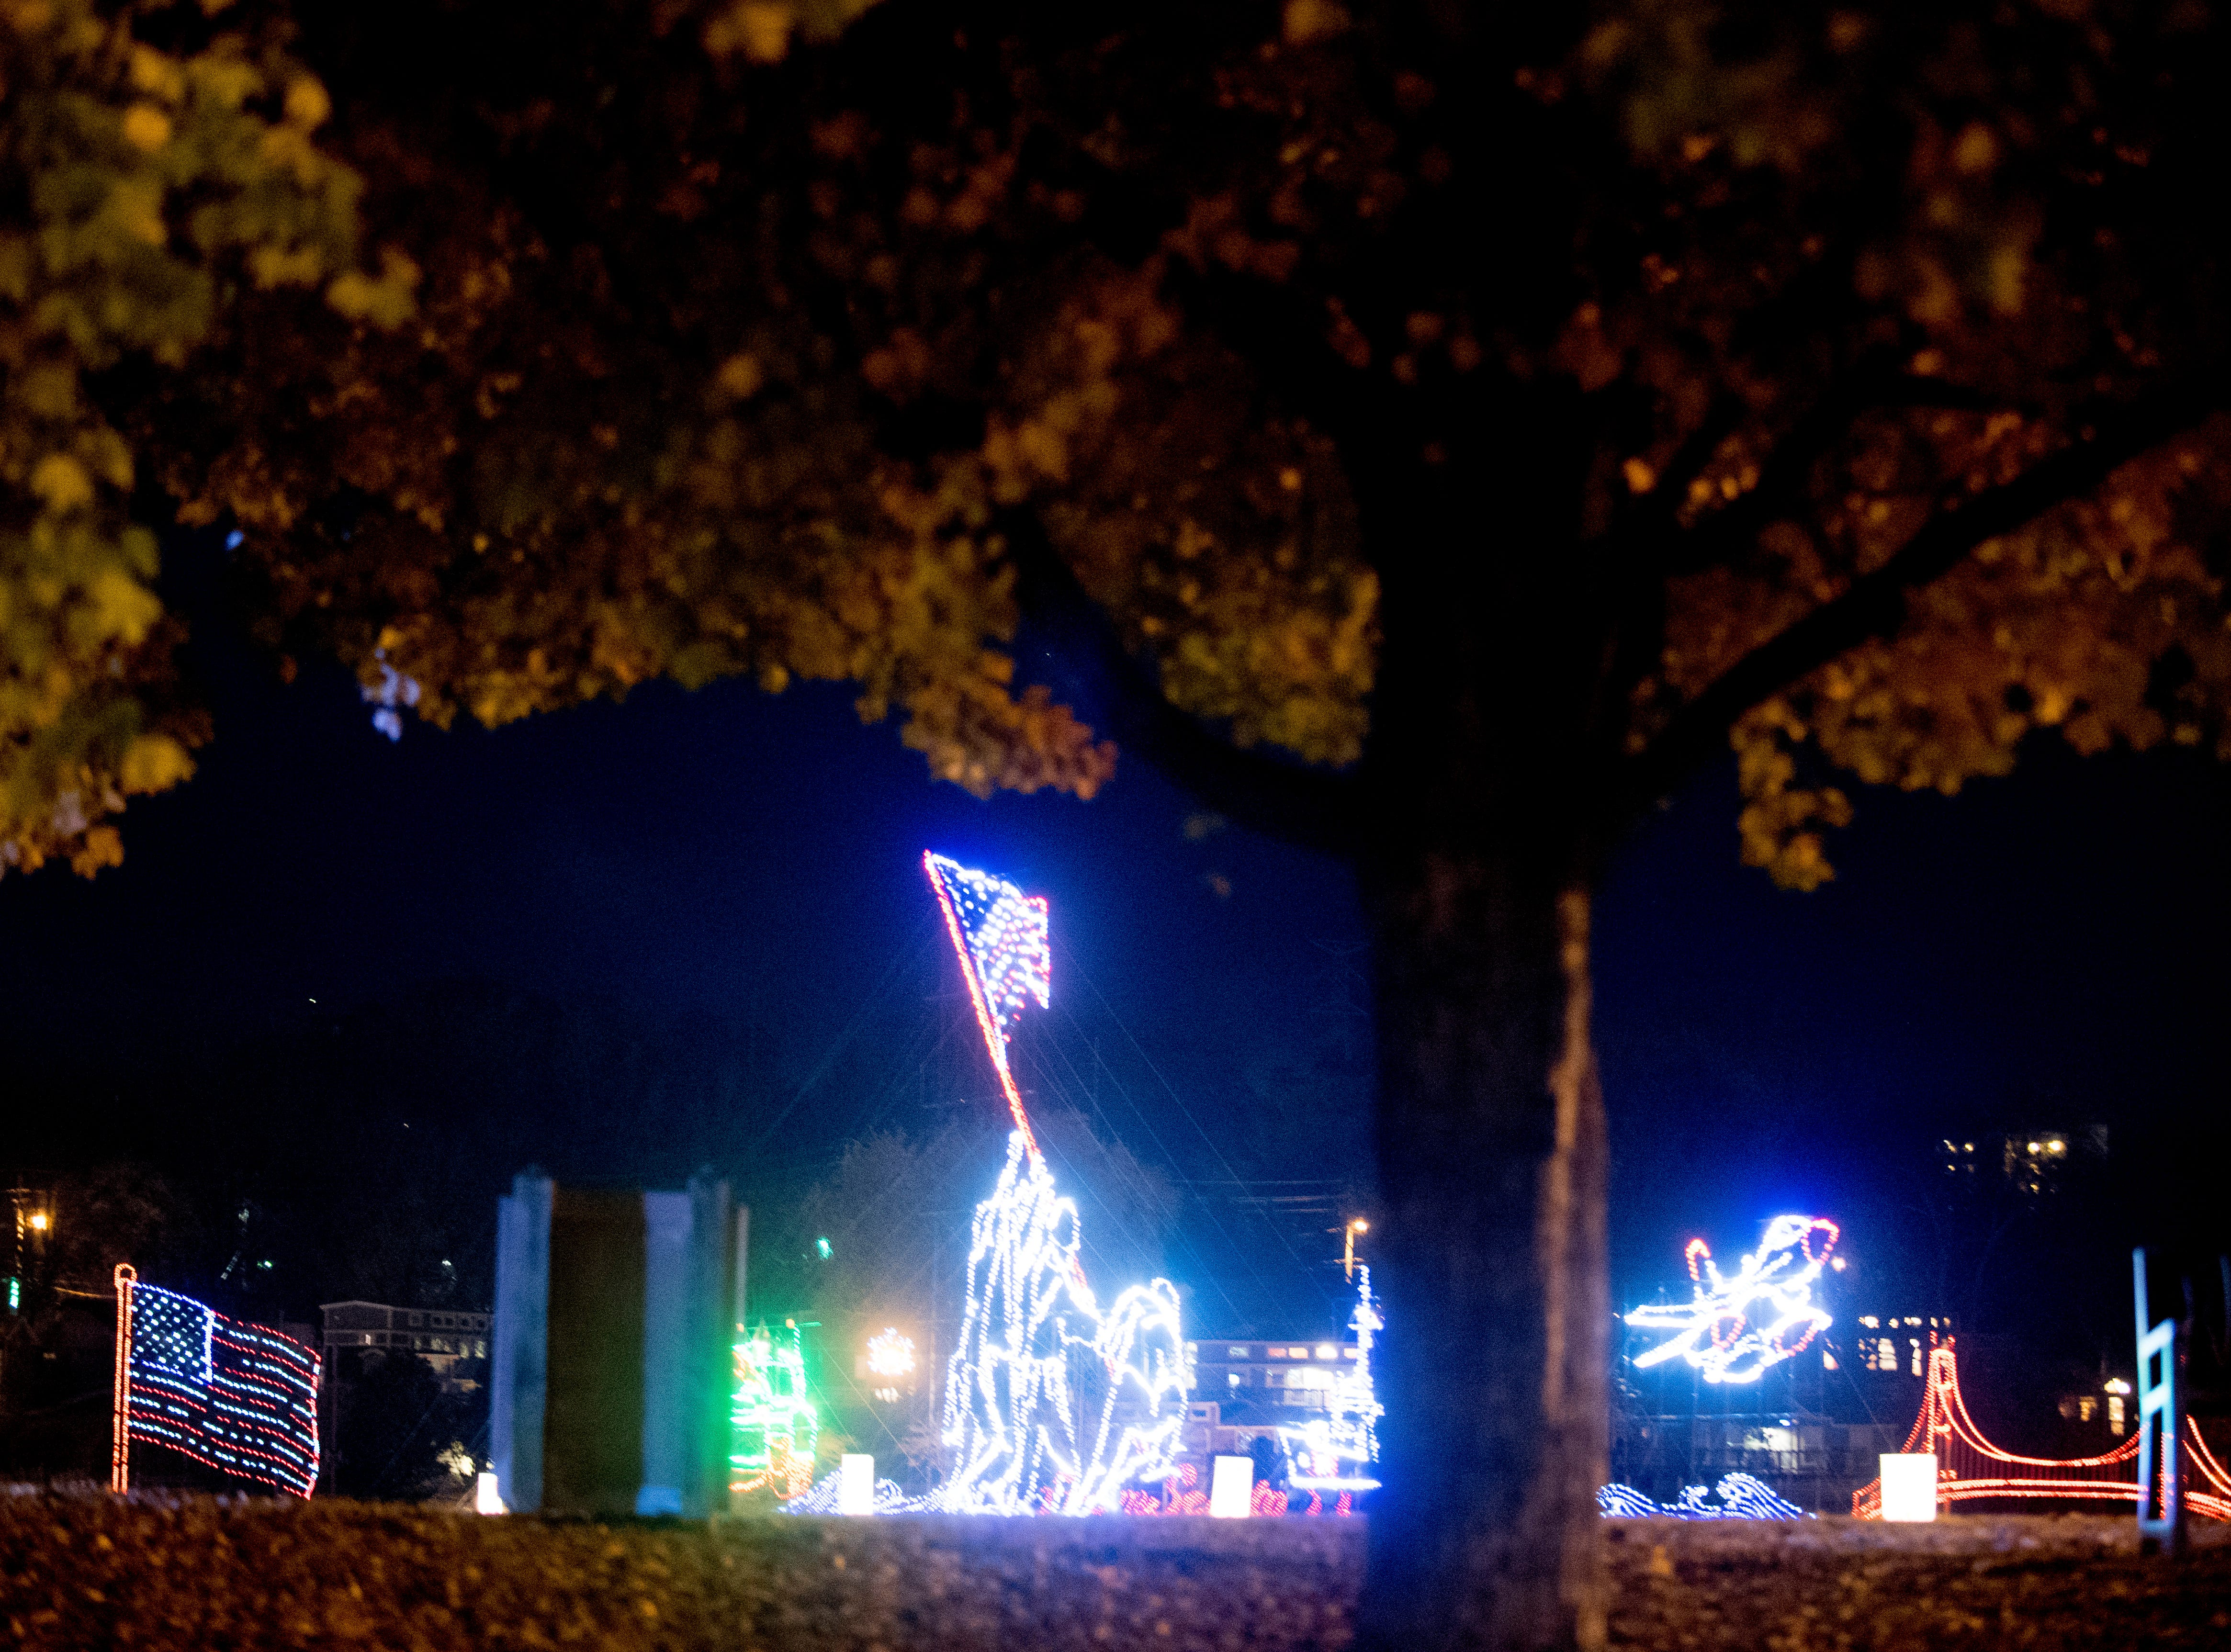 Several holiday light displays honoring veterans can be seen at the annual Winterfest holiday lights display at Patriot Park in Pigeon Forge, Tennessee on Friday, November 16, 2018.